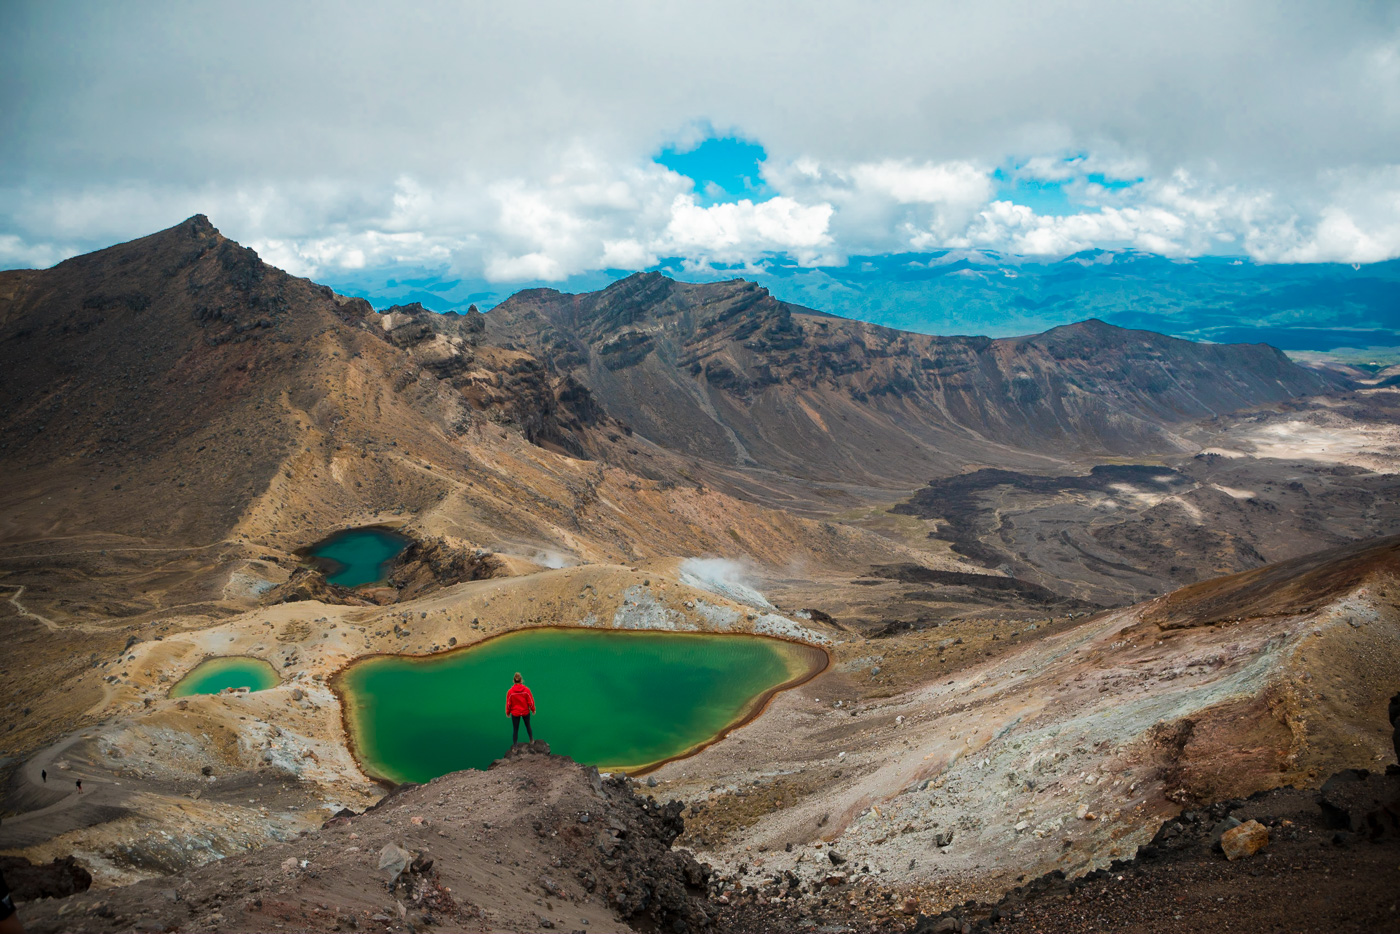 The famous Emerald Lakes on the Tongariro Alpine Crossing